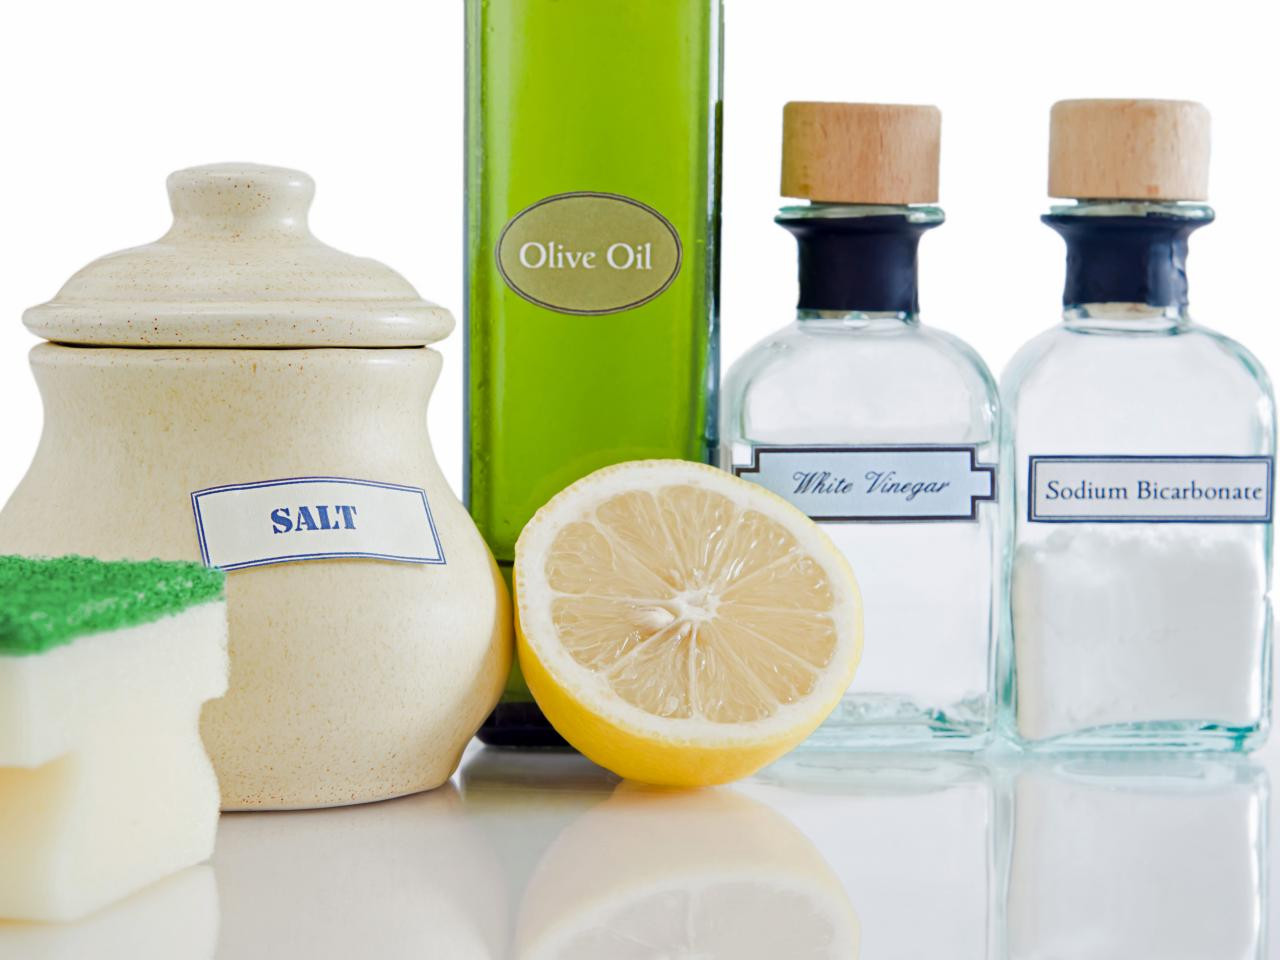 Best ideas about DIY House Cleaning . Save or Pin 15 Ways to Clean with Natural Products Now.